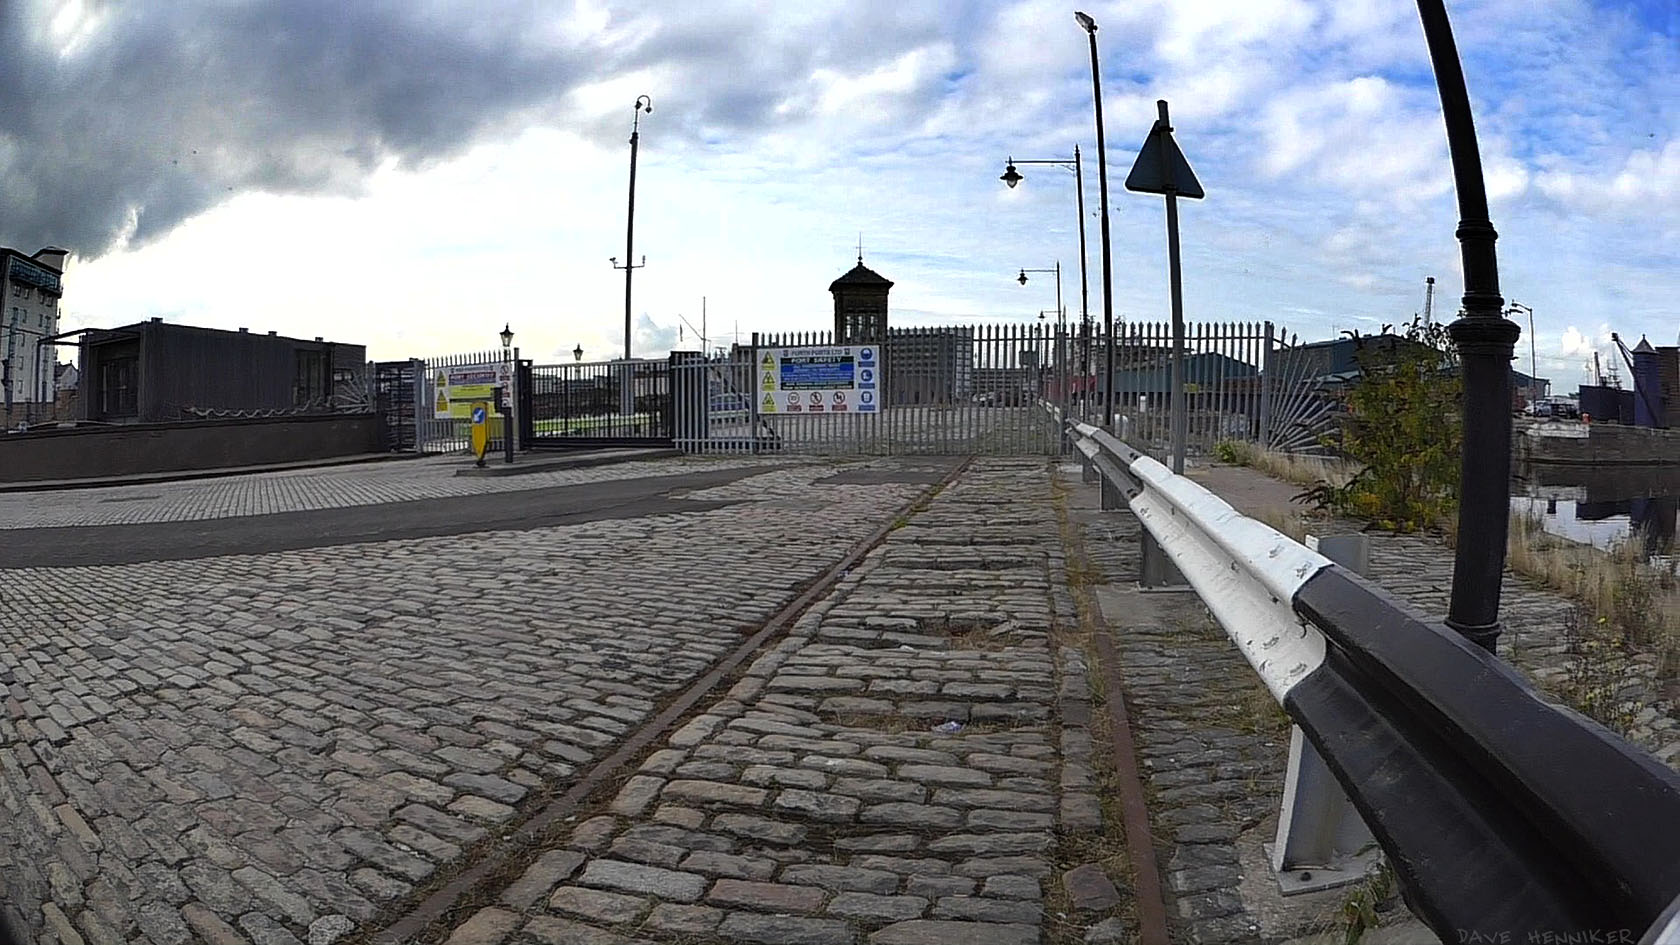 The public aren't allowed beyond the gate to Imperial Dock.